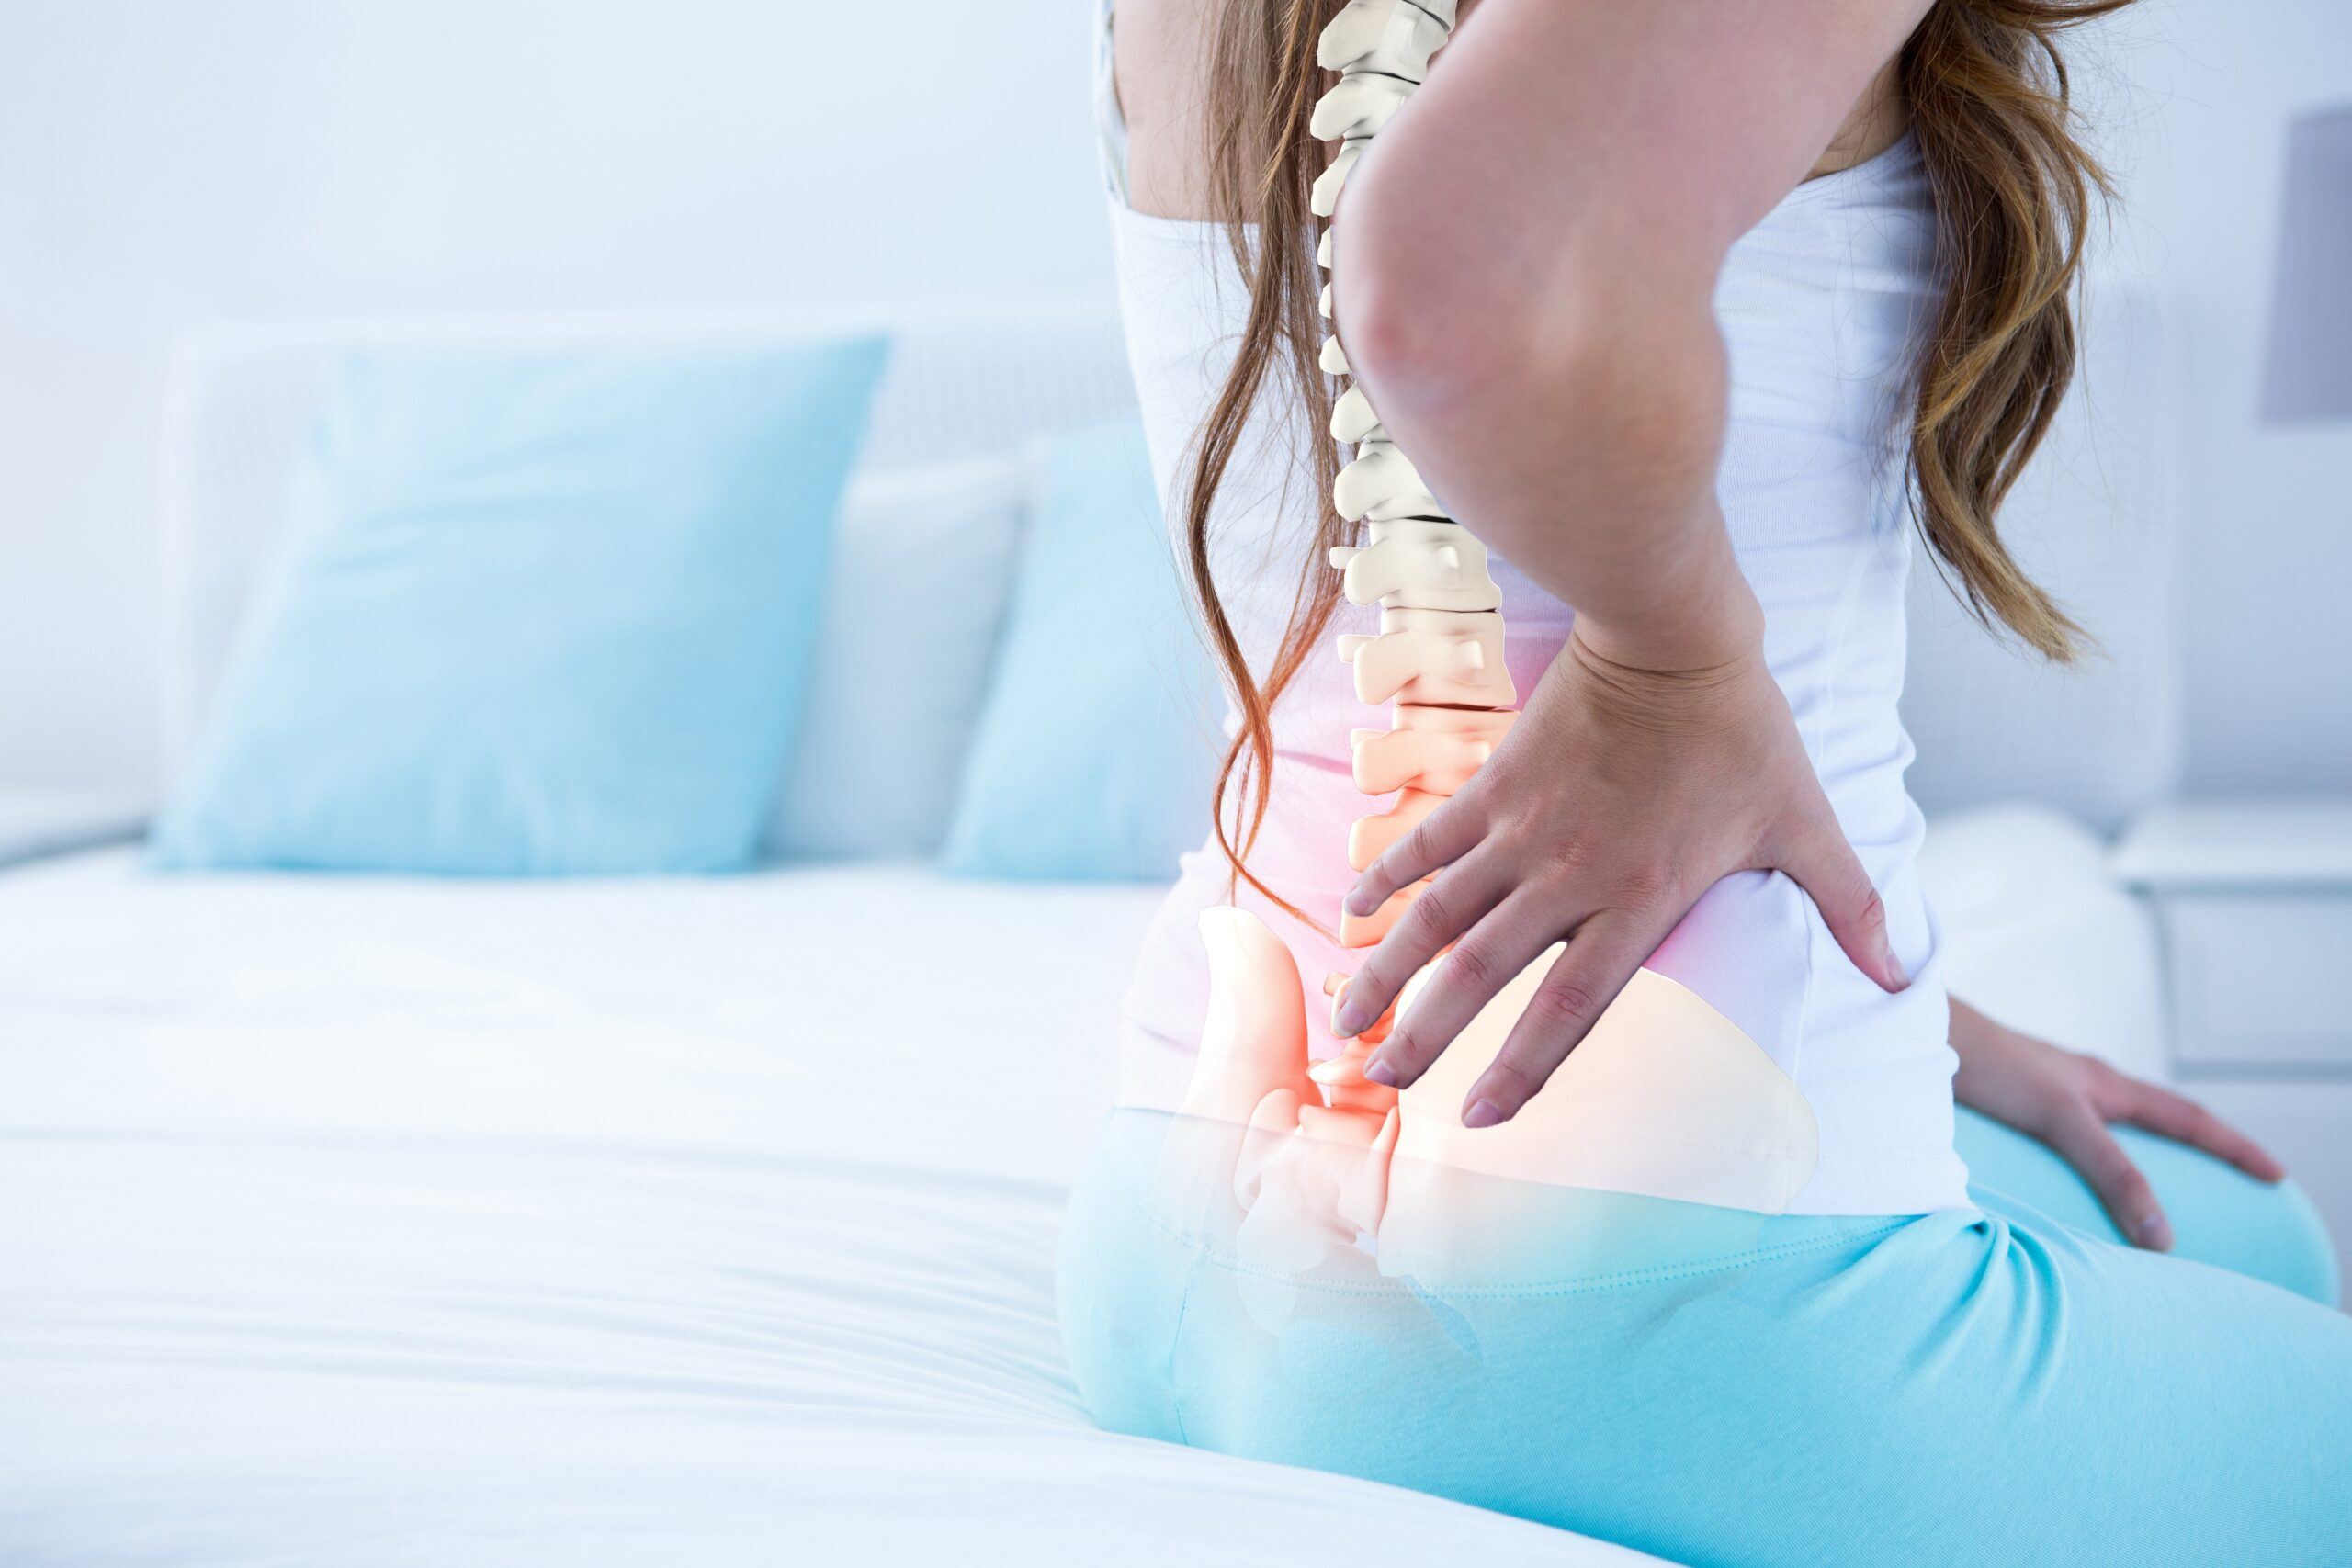 Woman showing pain in the spine, demonstrating causes of a misaligned spine